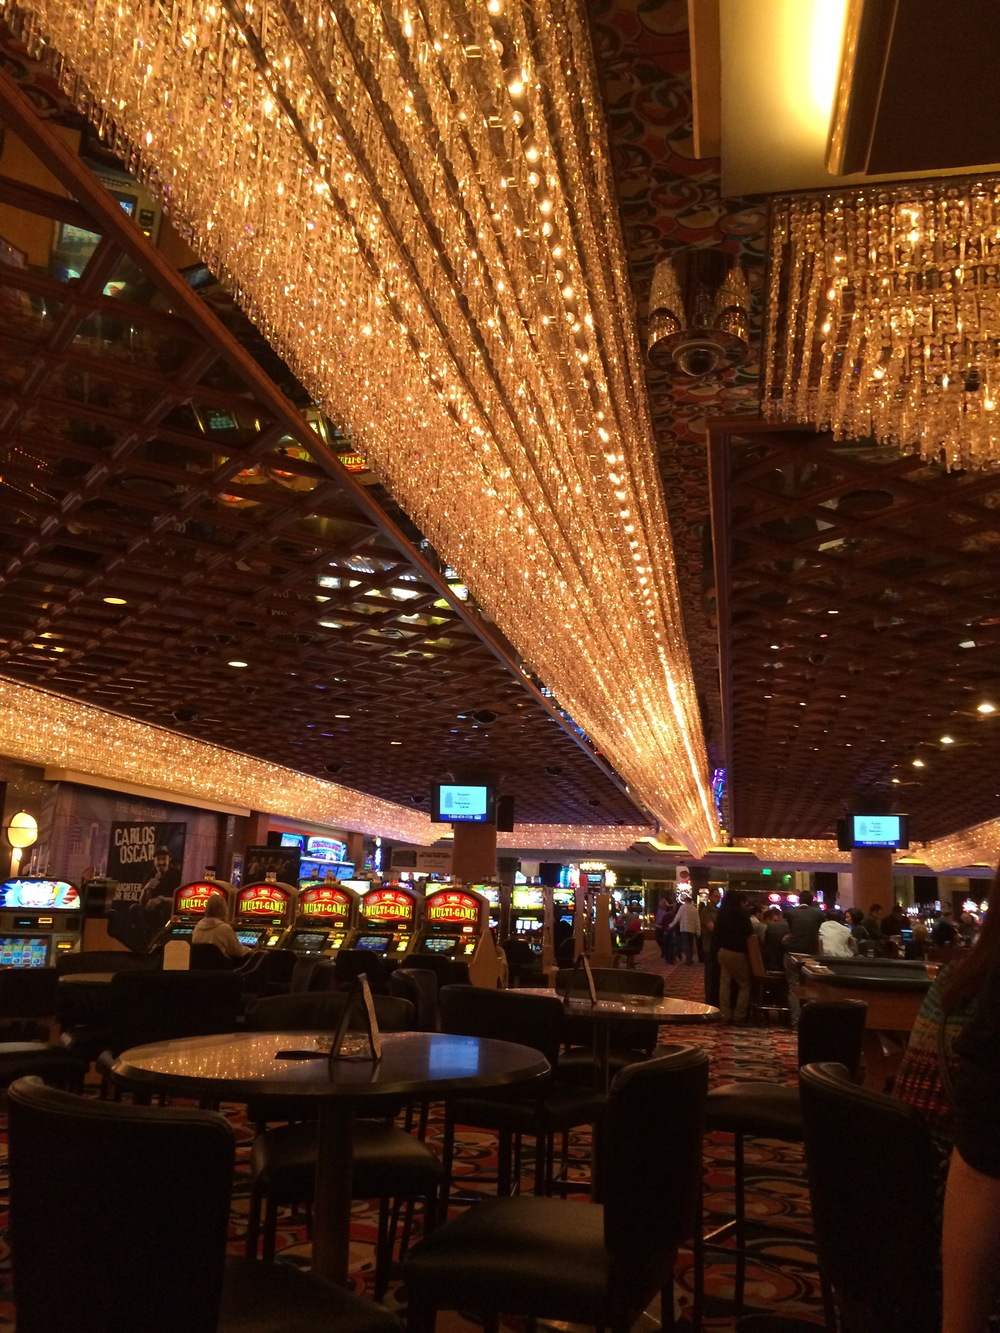 Las Vegas casinos looked and felt exactly as I expected them too. Lots of soft light glitz and sparkle.